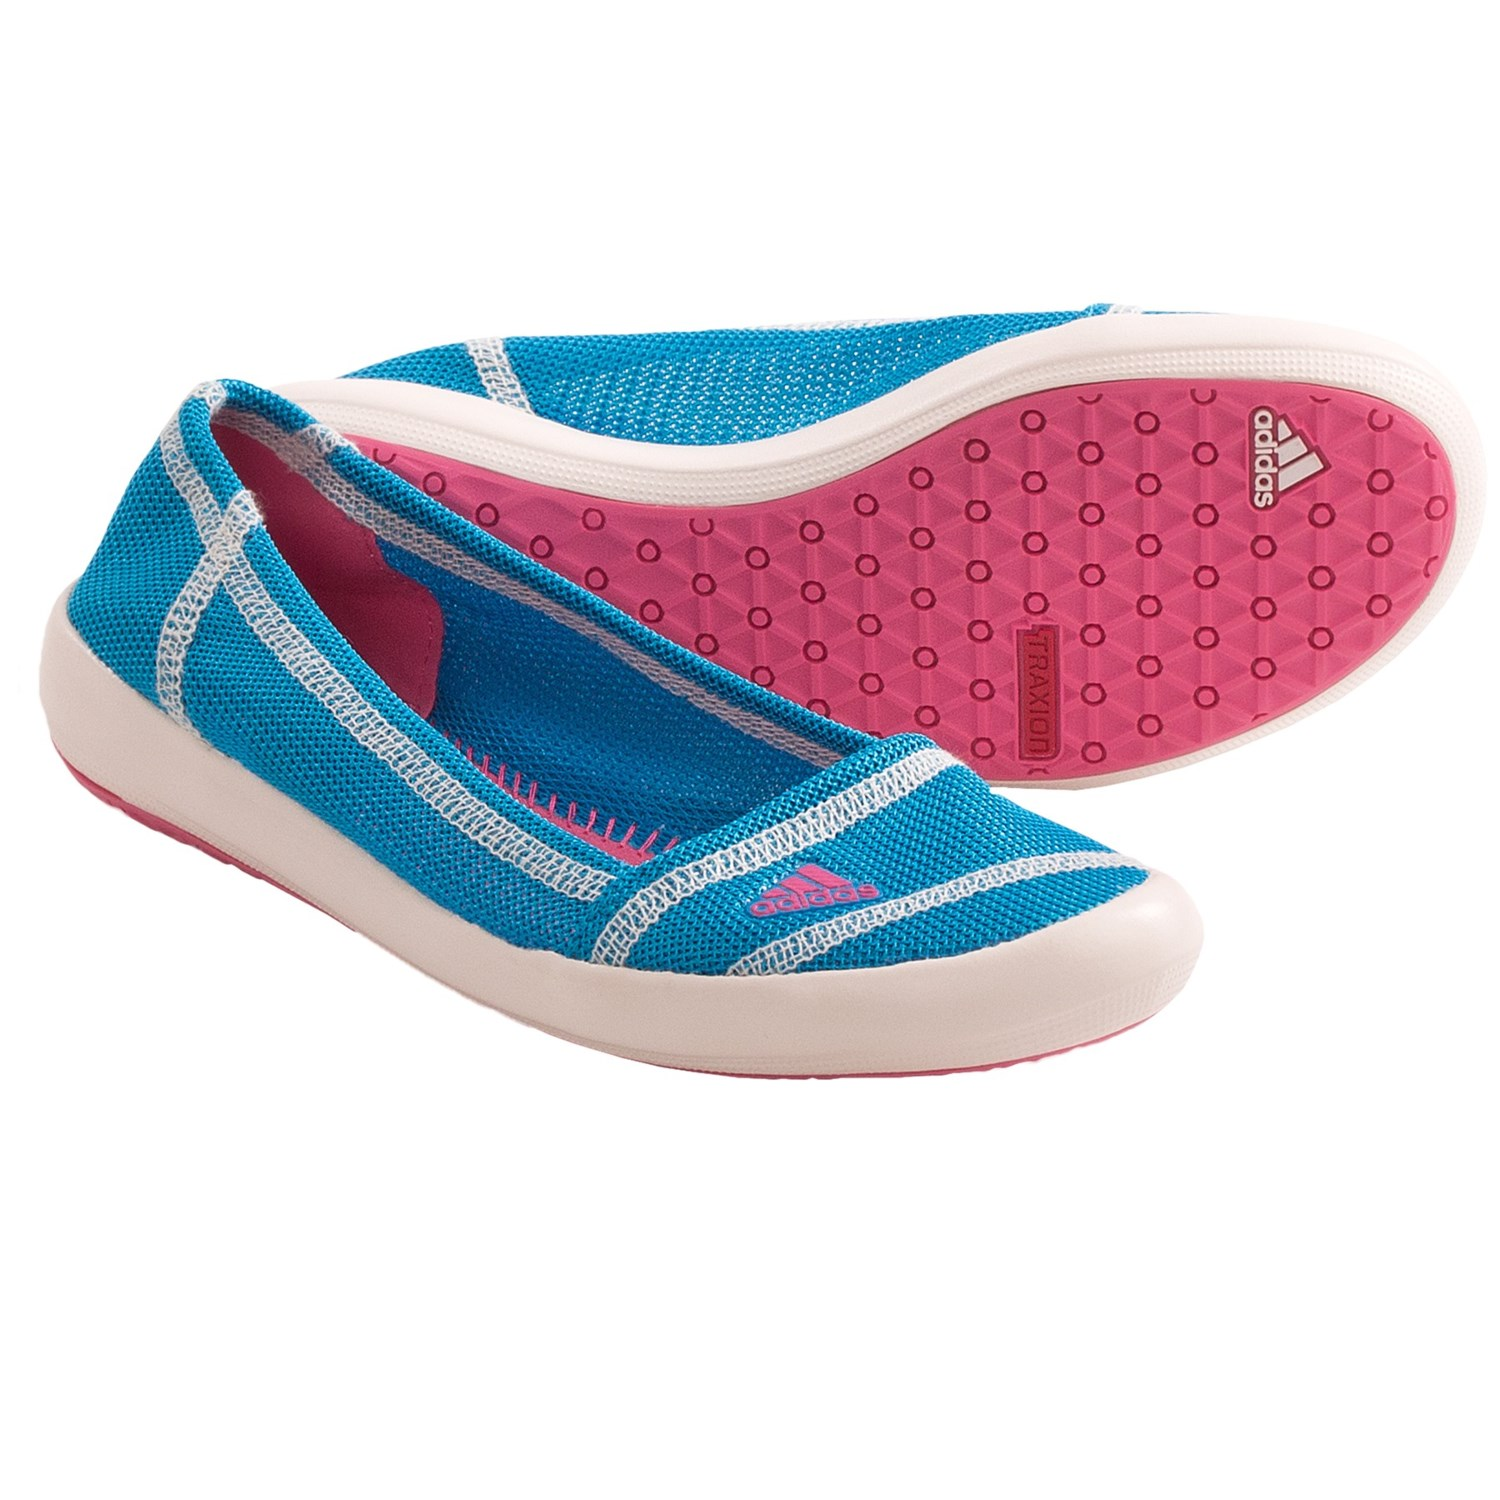 Jambu water shoes are great for the river, great for the trail, great for every day